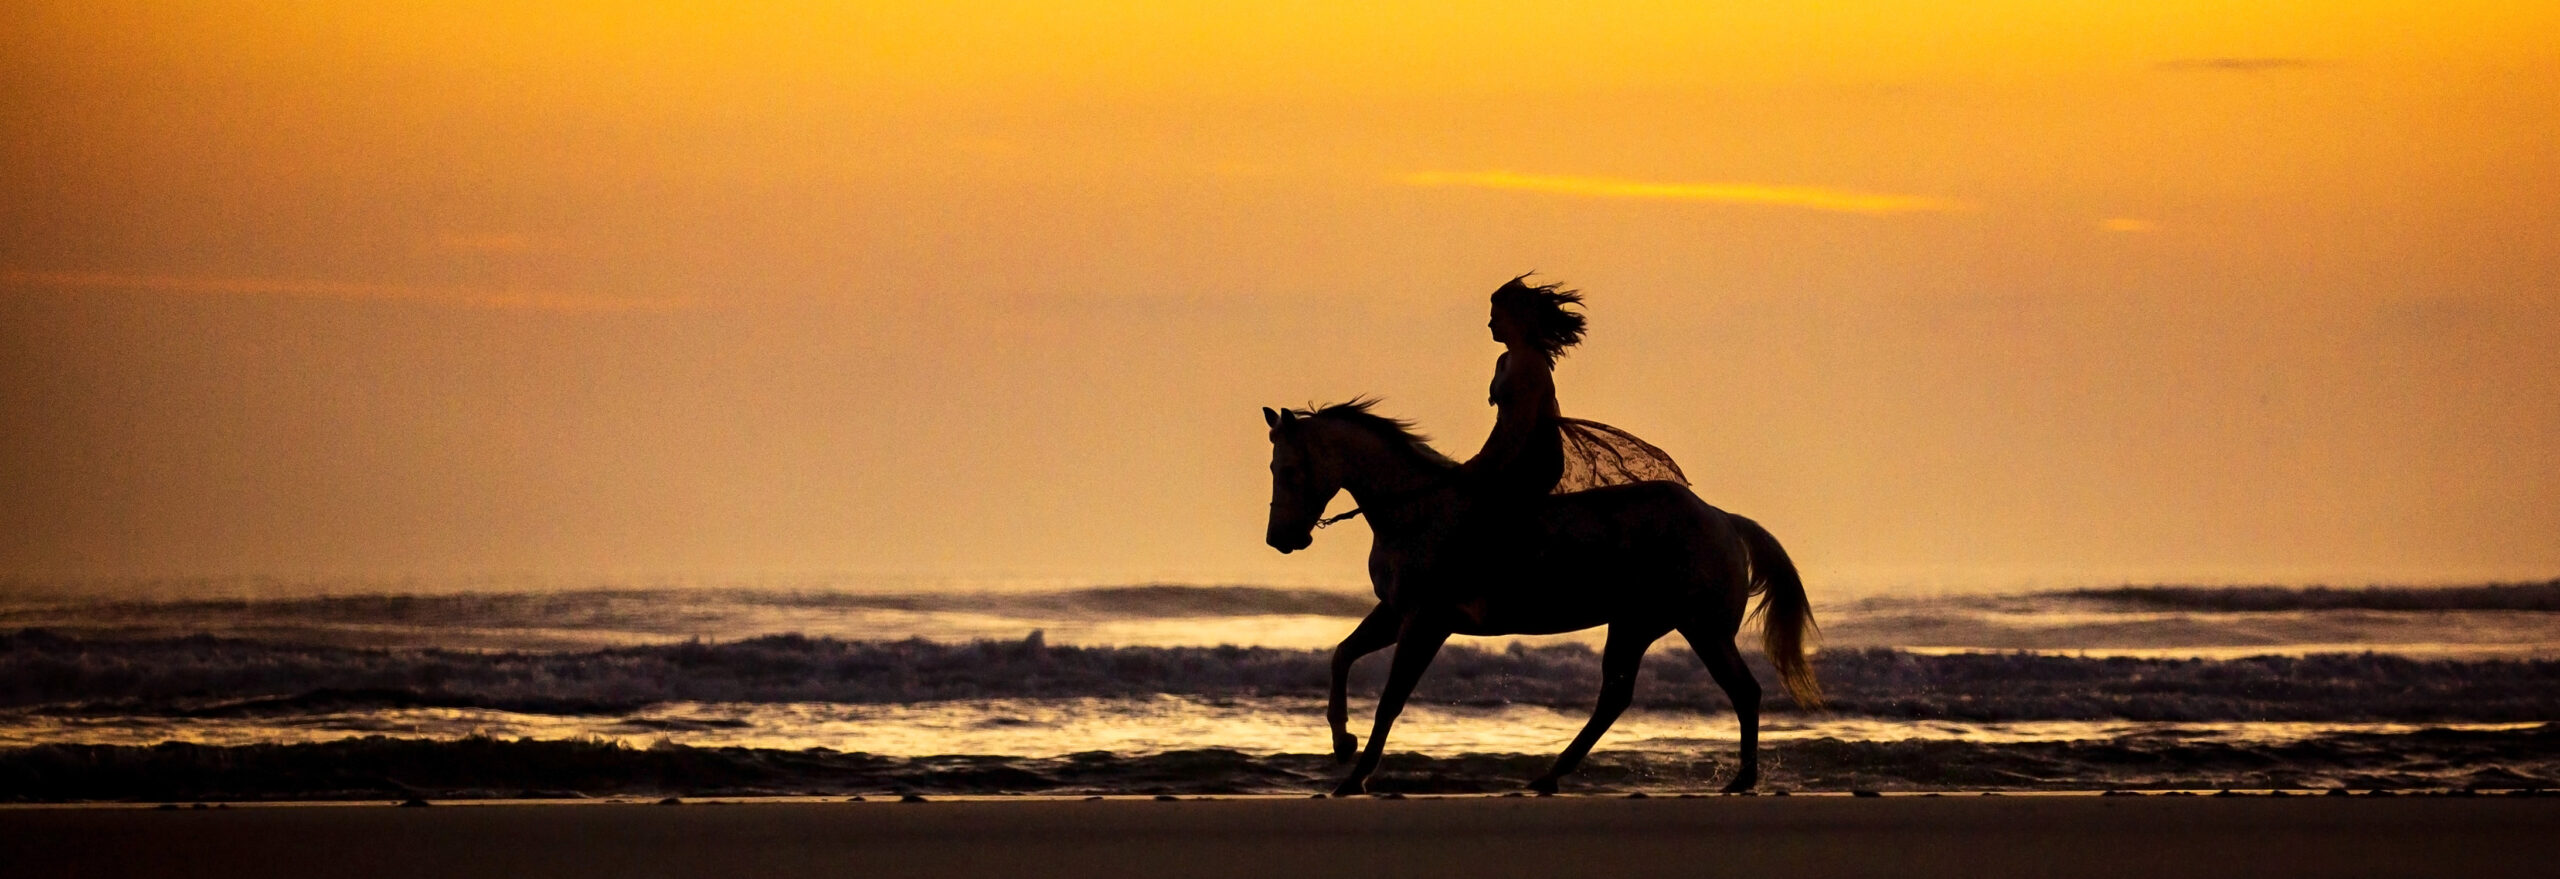 Woman Riding Horse on Beach at Sunrise